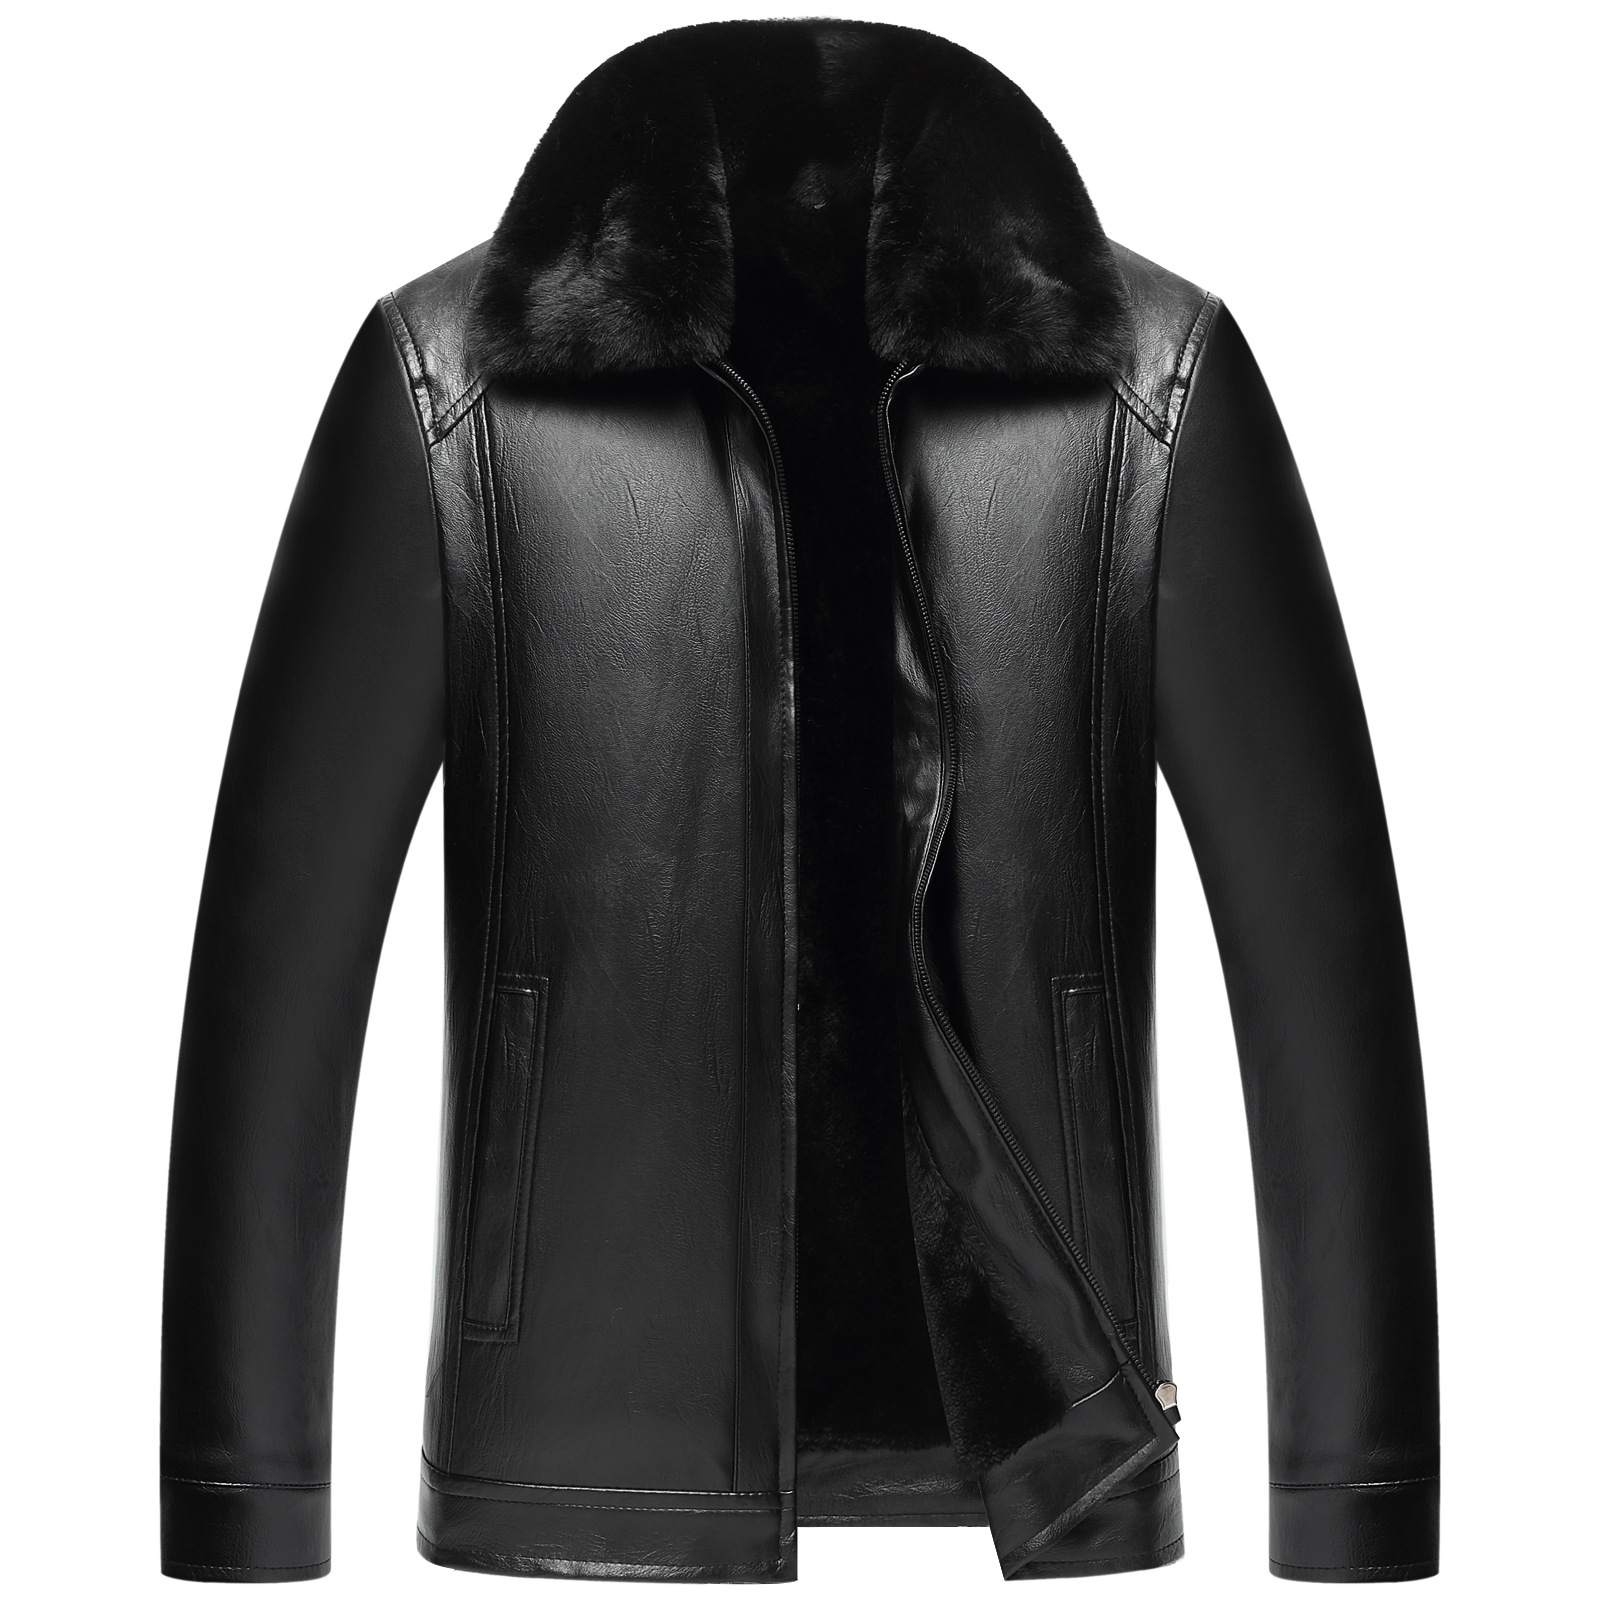 2019 New Style Fur Collar Leather Coat MEN'S Pu Fur MEN'S Outerwear Fold-down Collar Middle-aged Brushed And Thick Leather Jacke